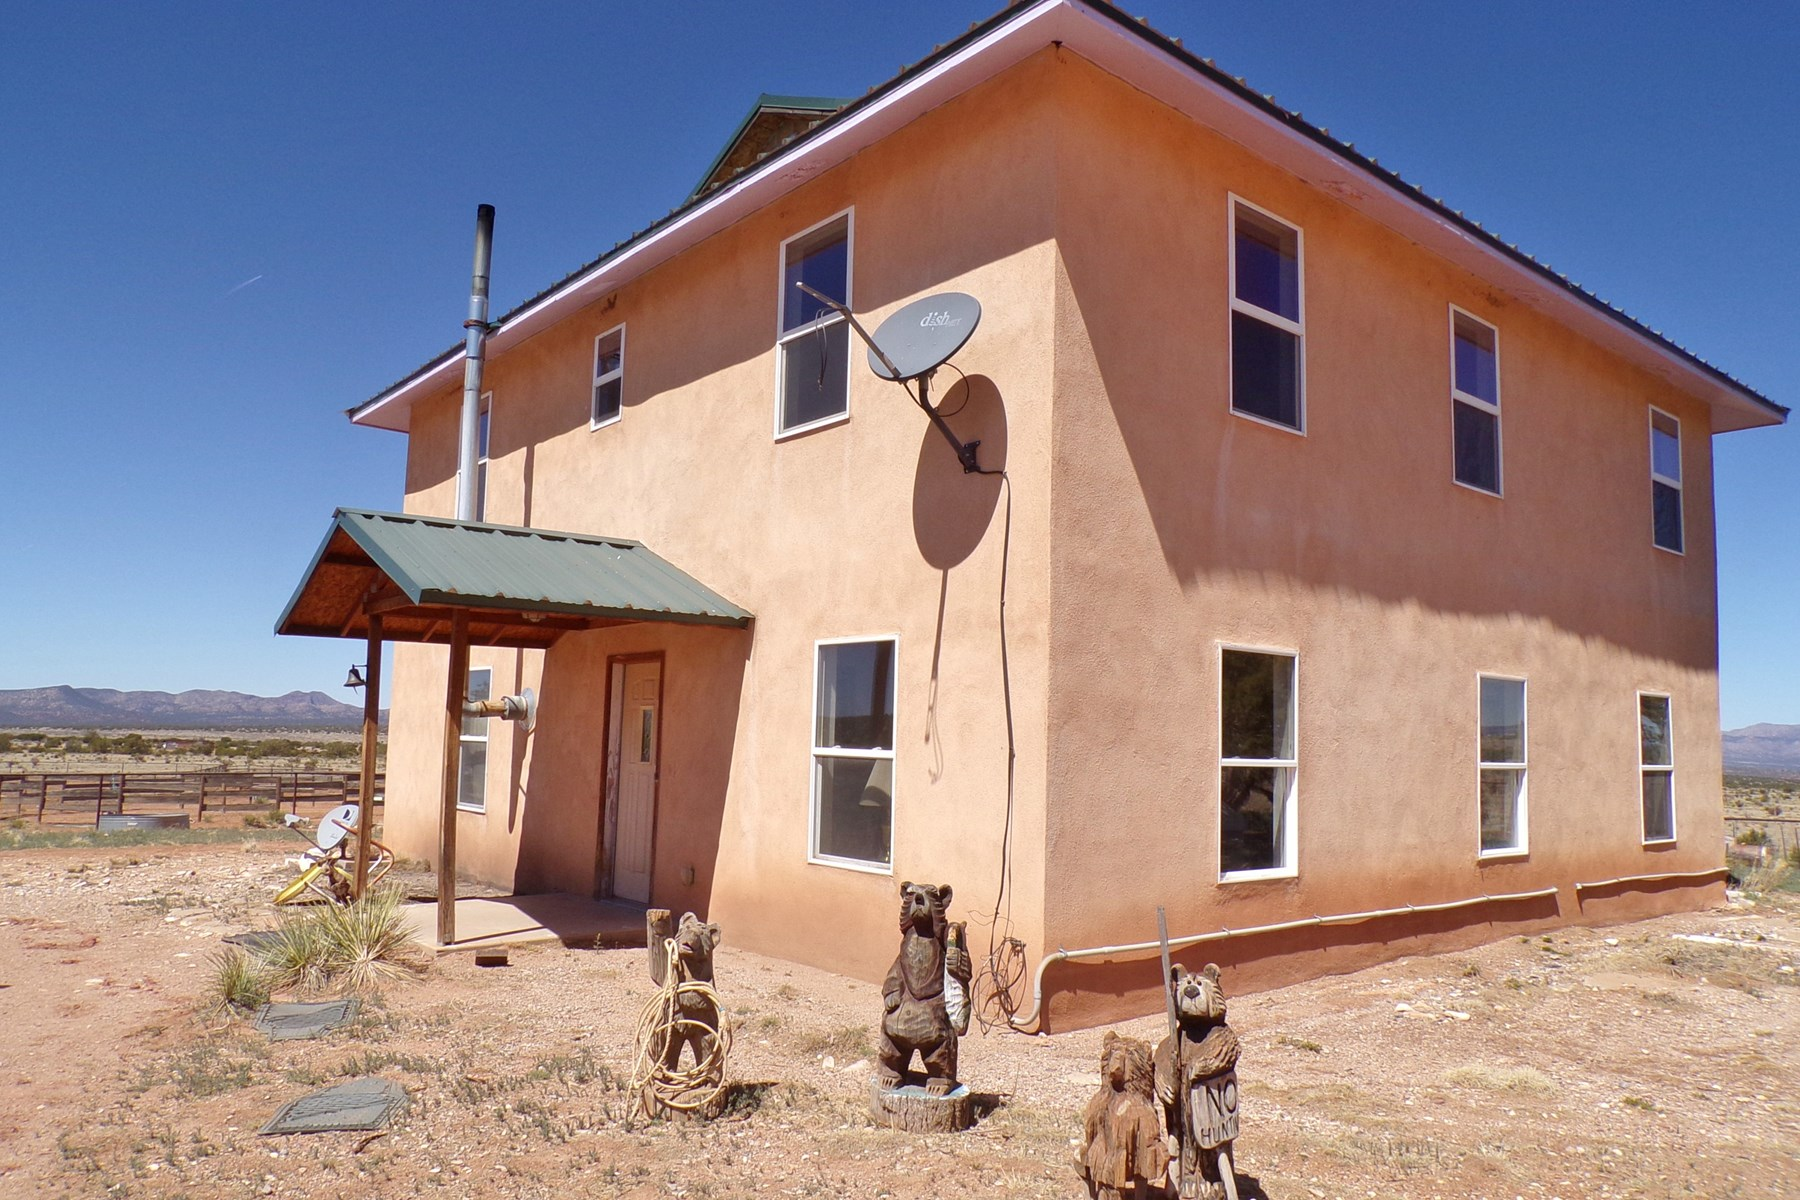 NM Equine Property For Sale near Mountainair on 40 Acres